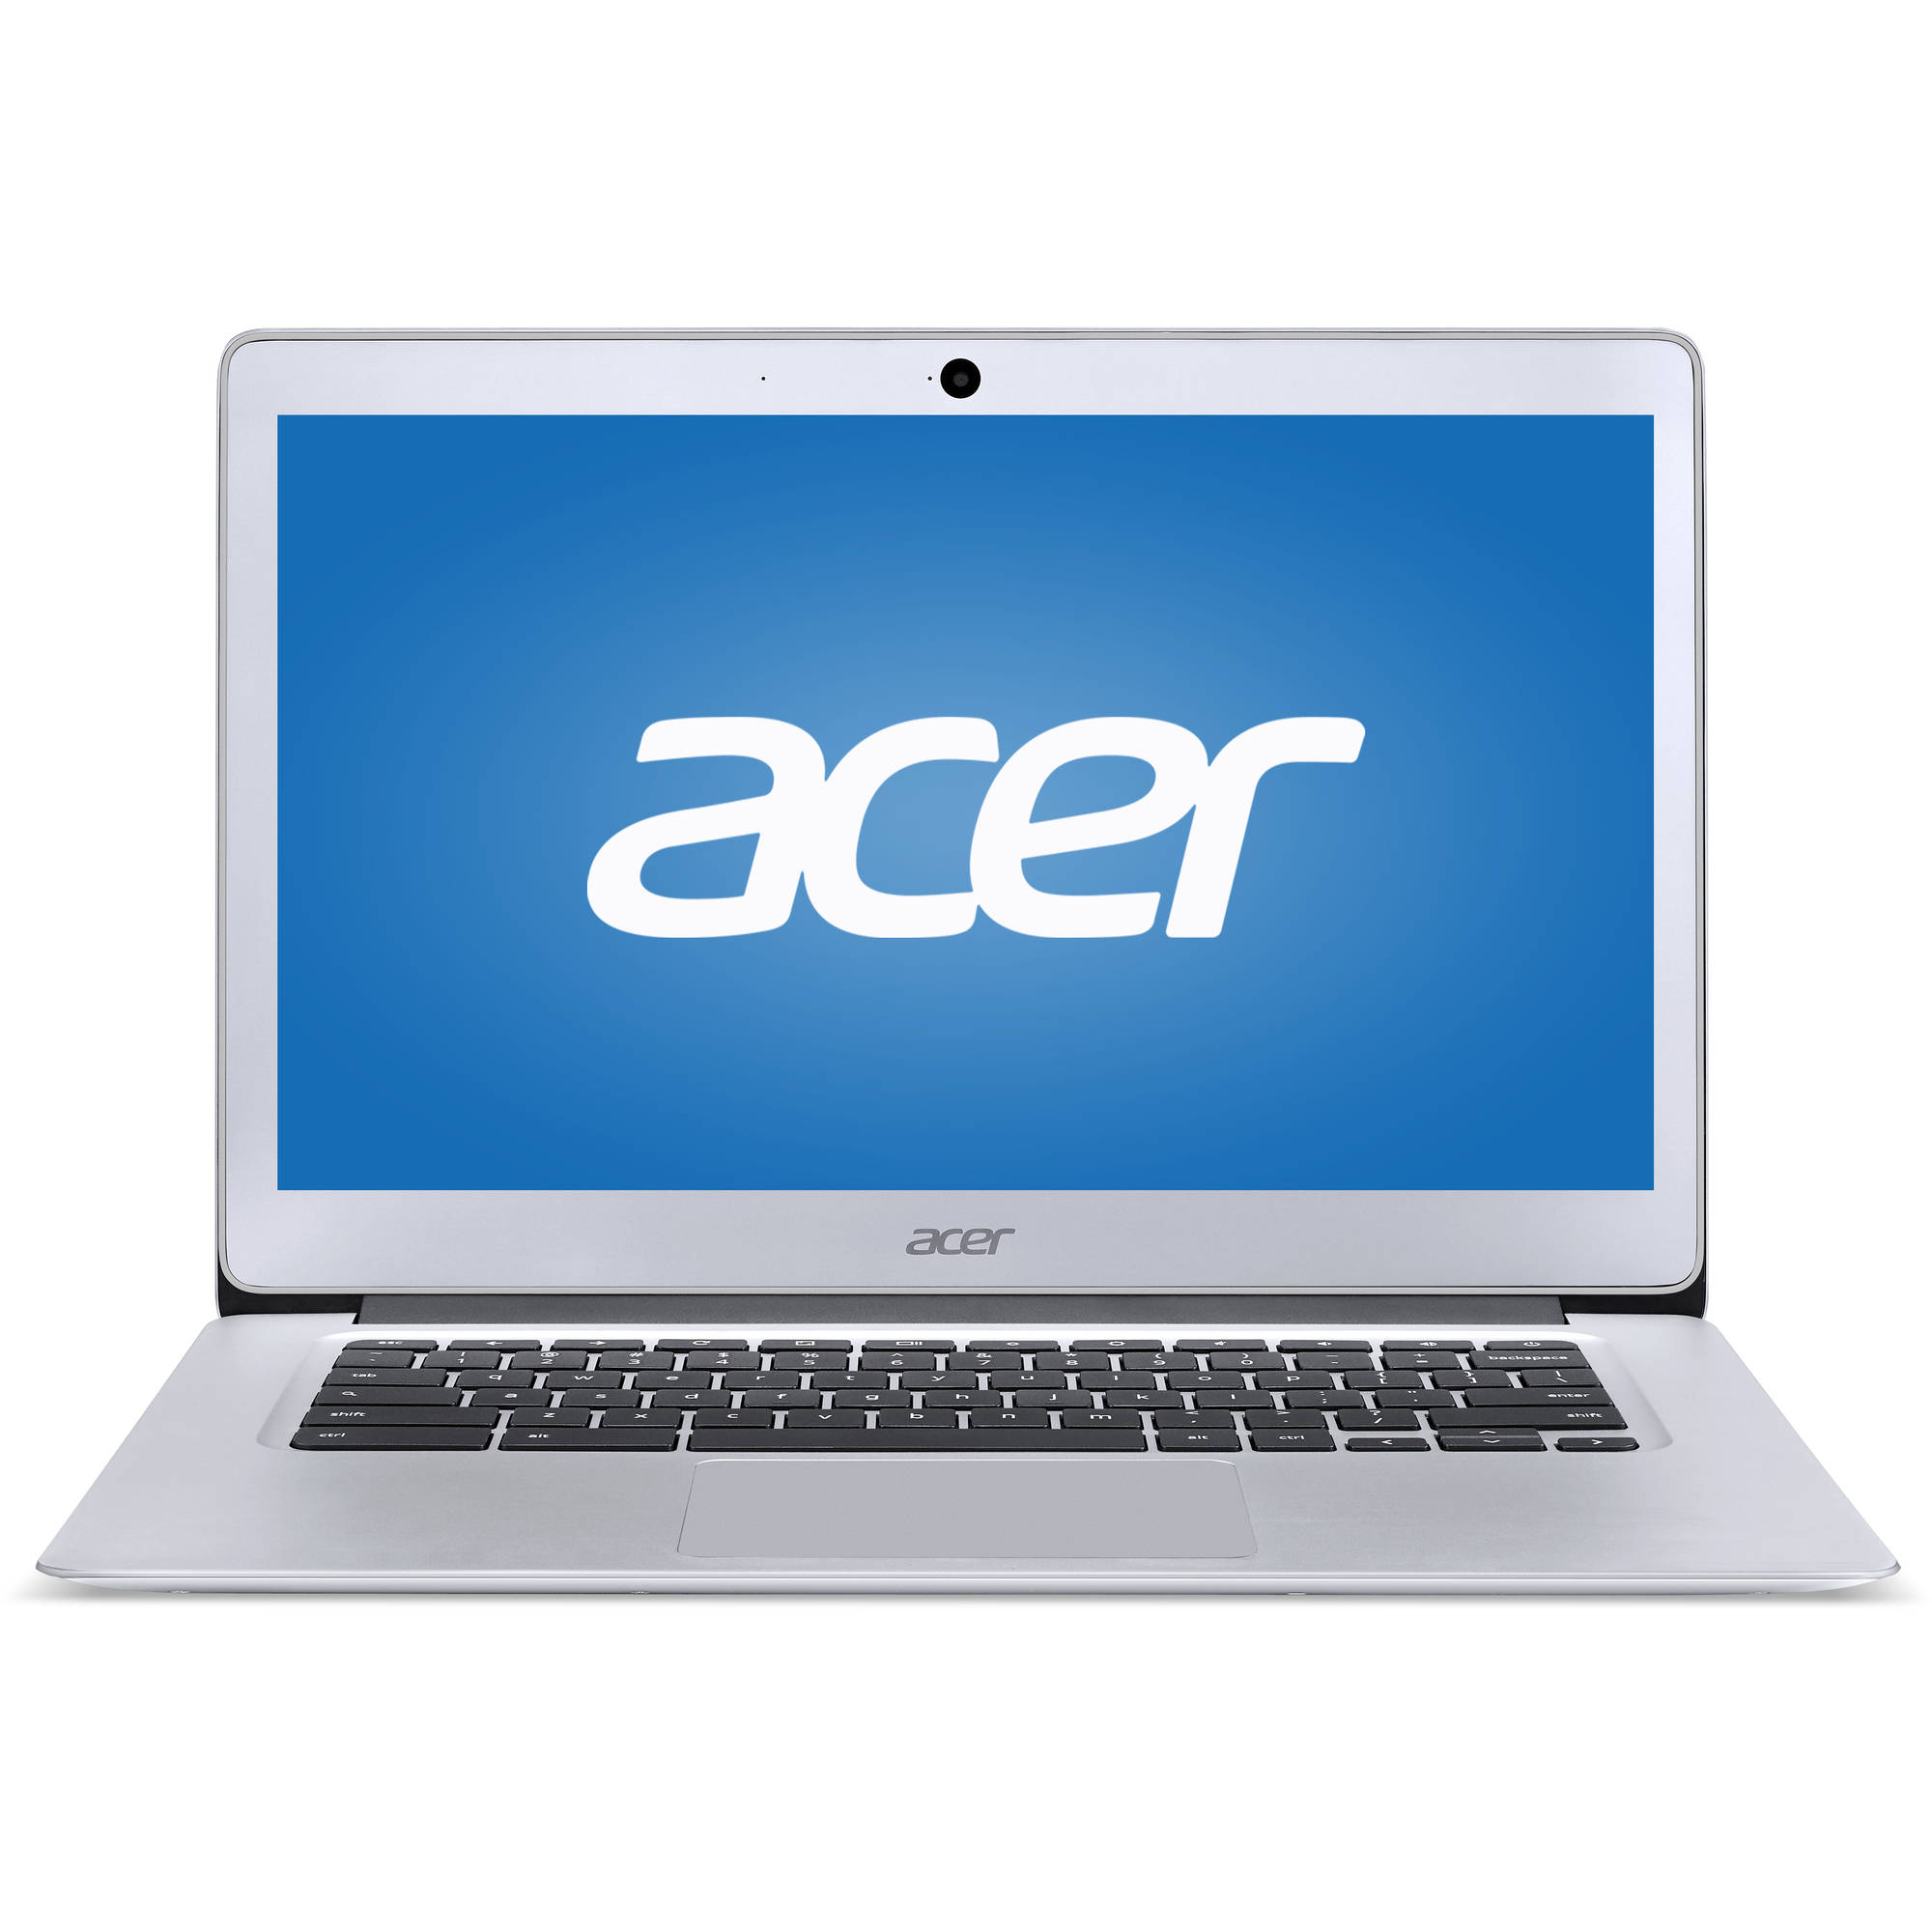 "Acer Sparkly Silver 14"" CB3-431-C5FM Chromebook PC with Intel Celeron N3160 Processor, 4GB Memory, 32GB Flash Drive and Chrome OS"